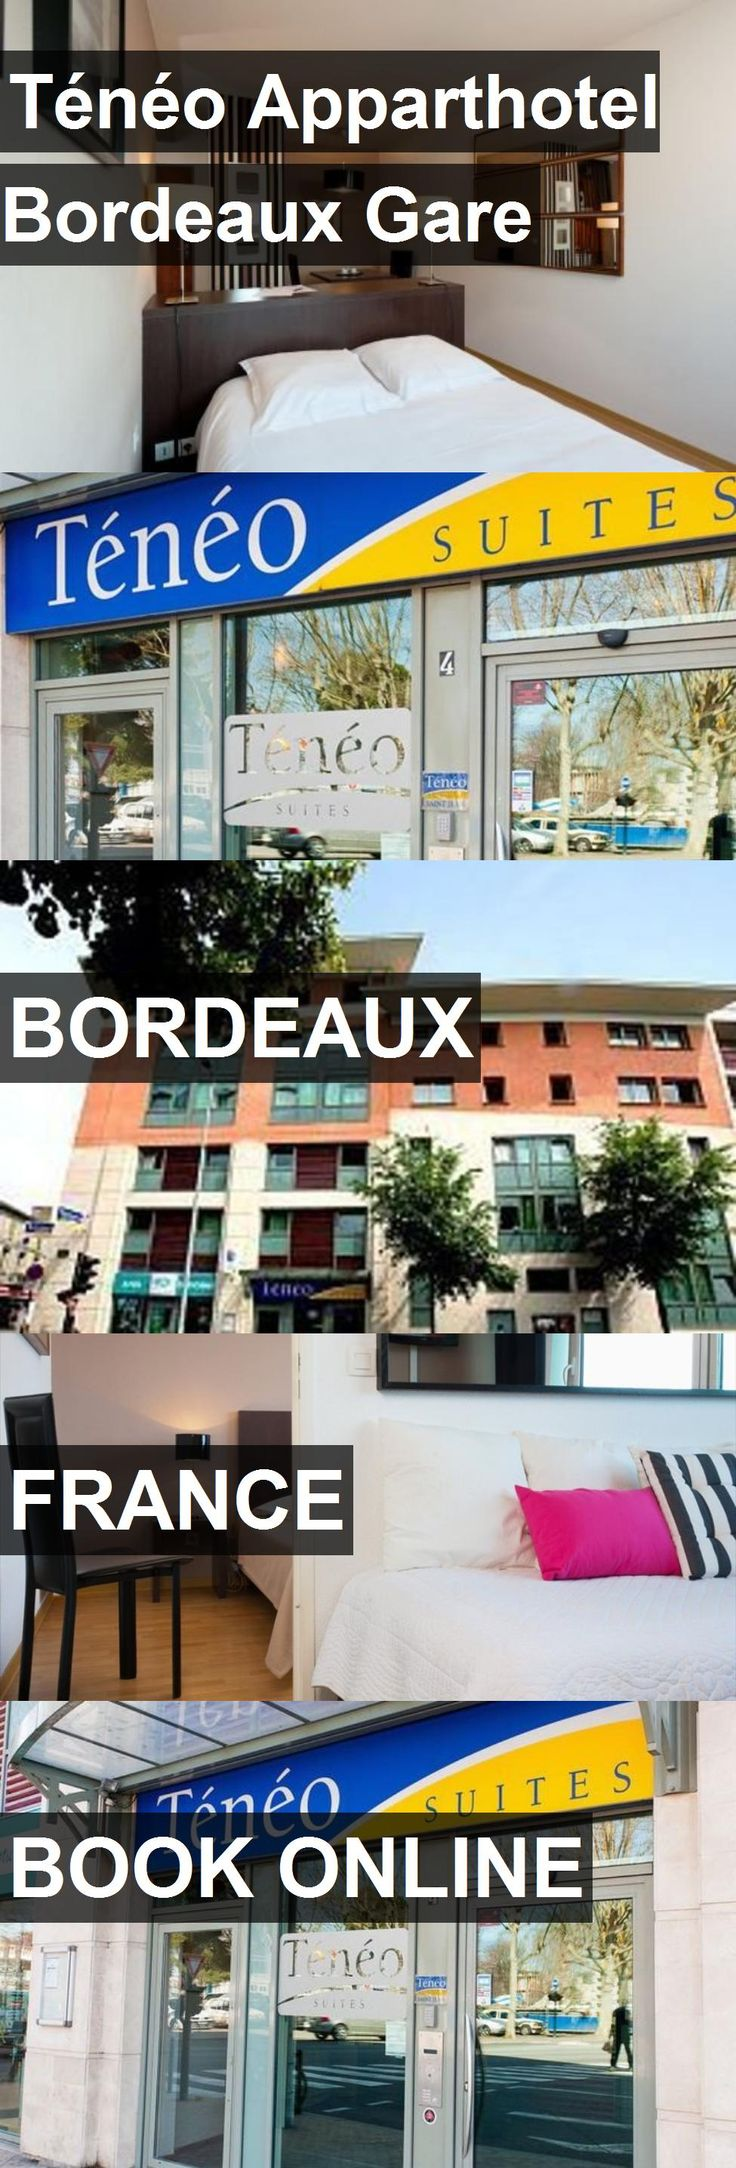 Ténéo Apparthotel Bordeaux Gare in Bordeaux, France. For more information, photos, reviews and best prices please follow the link. #France #Bordeaux #travel #vacation #hotel